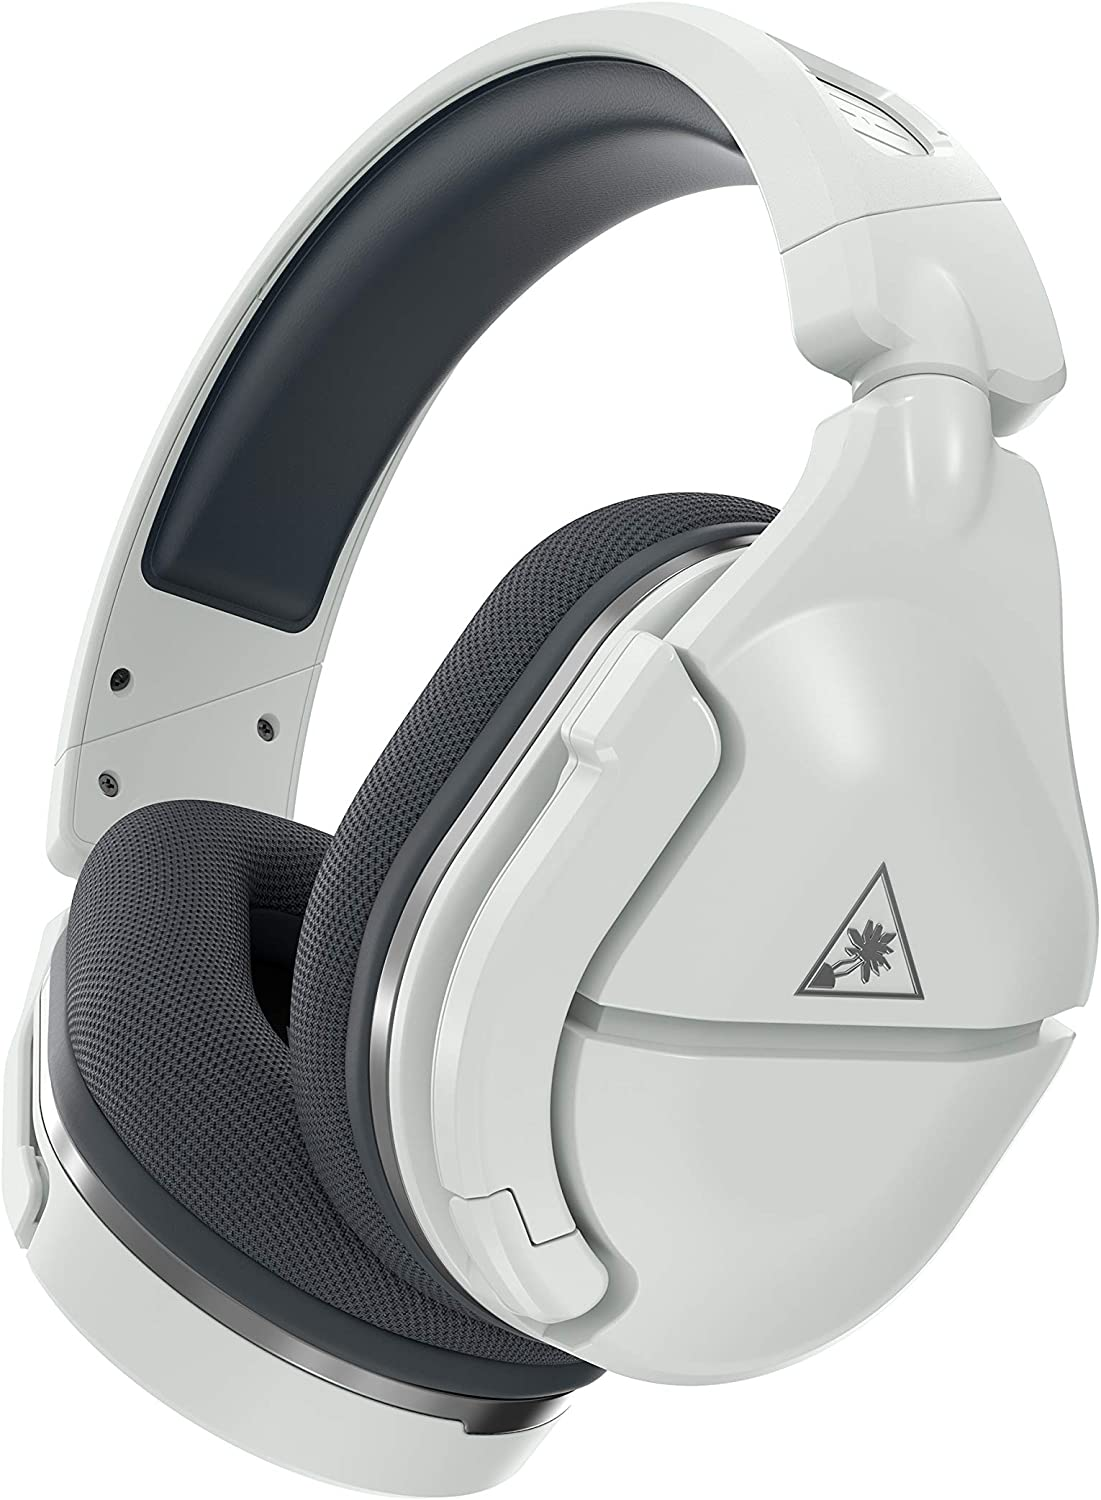 Turtle Beach Stealth 600 x Gen 2 - Auriculares Gaming Inalámbricos - Xbox One y Xbox Series X, Blanco: Amazon.es: Videojuegos